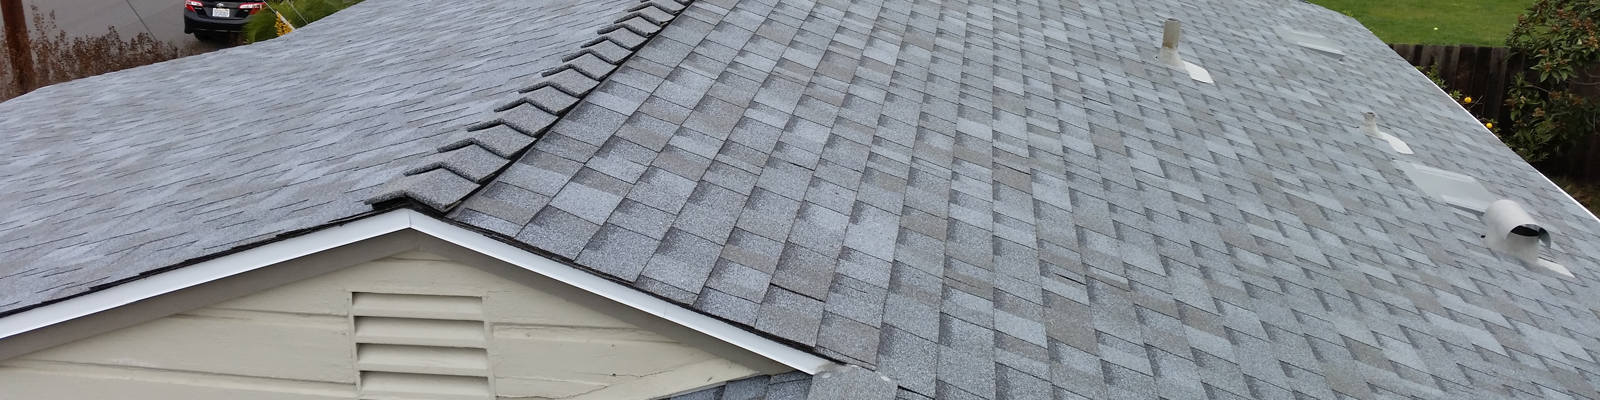 Asphalt roof shingle installation services in San Diego